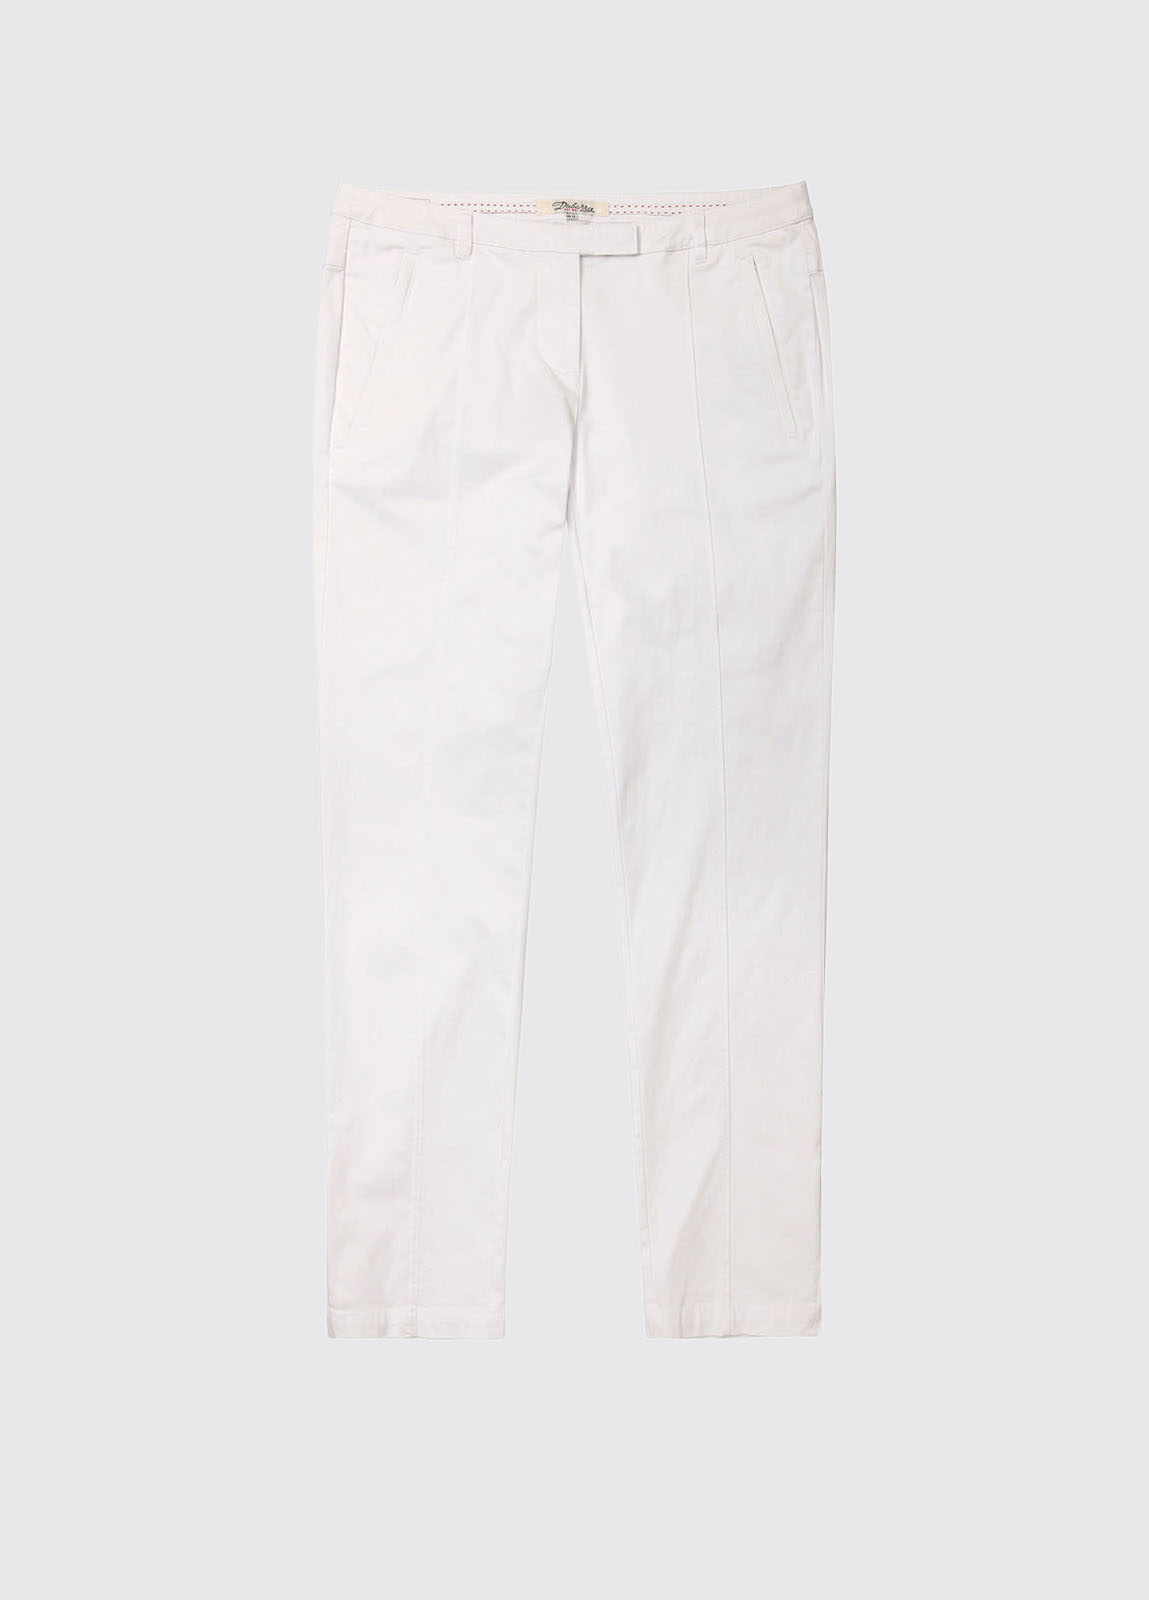 Orchard Capri Pants - White